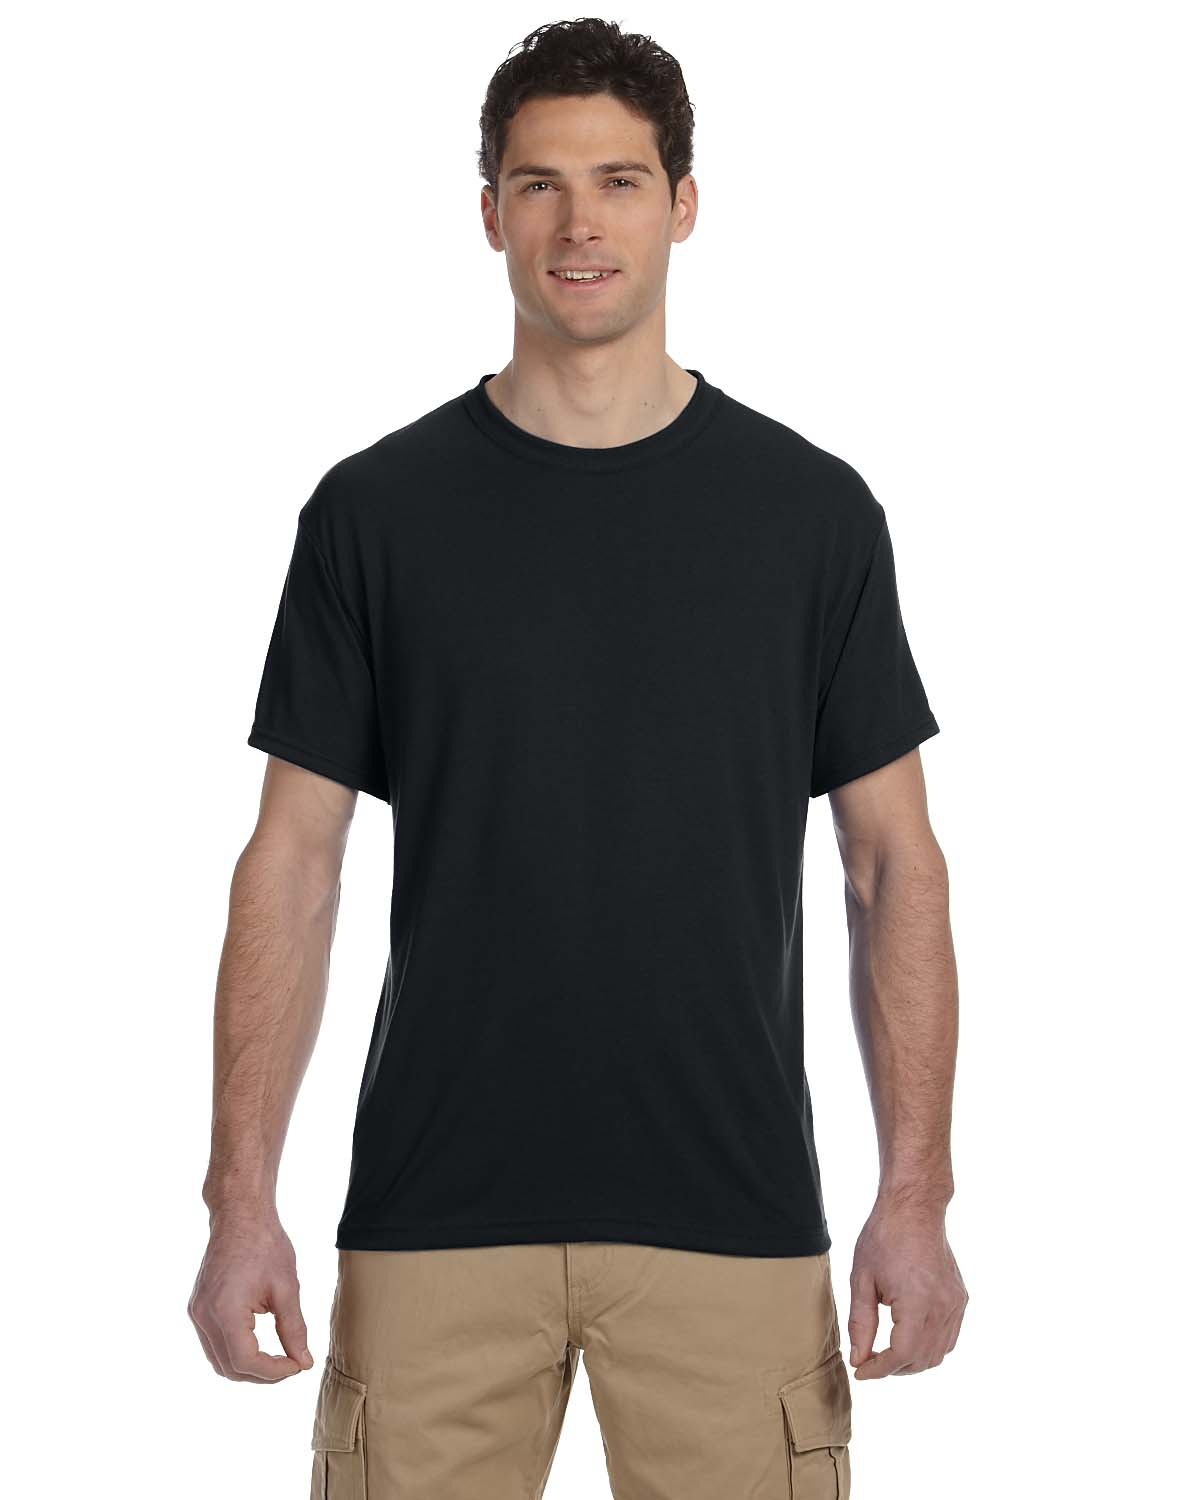 Adult 5.3 oz. DRI-POWER® SPORT T-Shirt